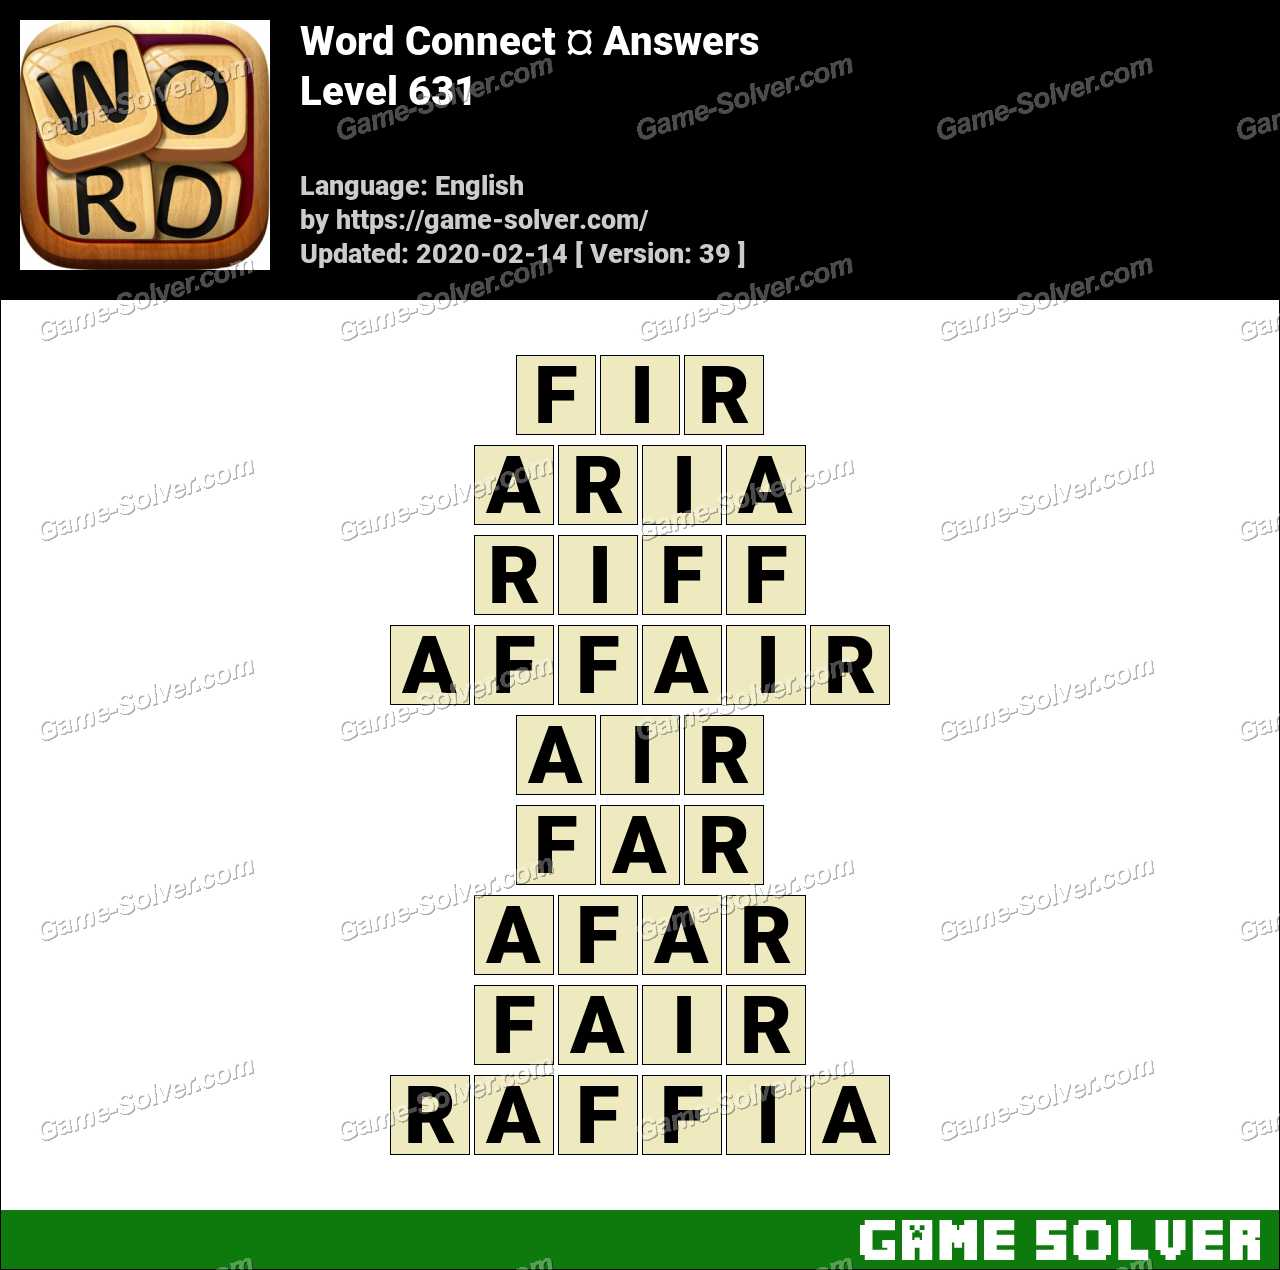 Word Connect Level 631 Answers